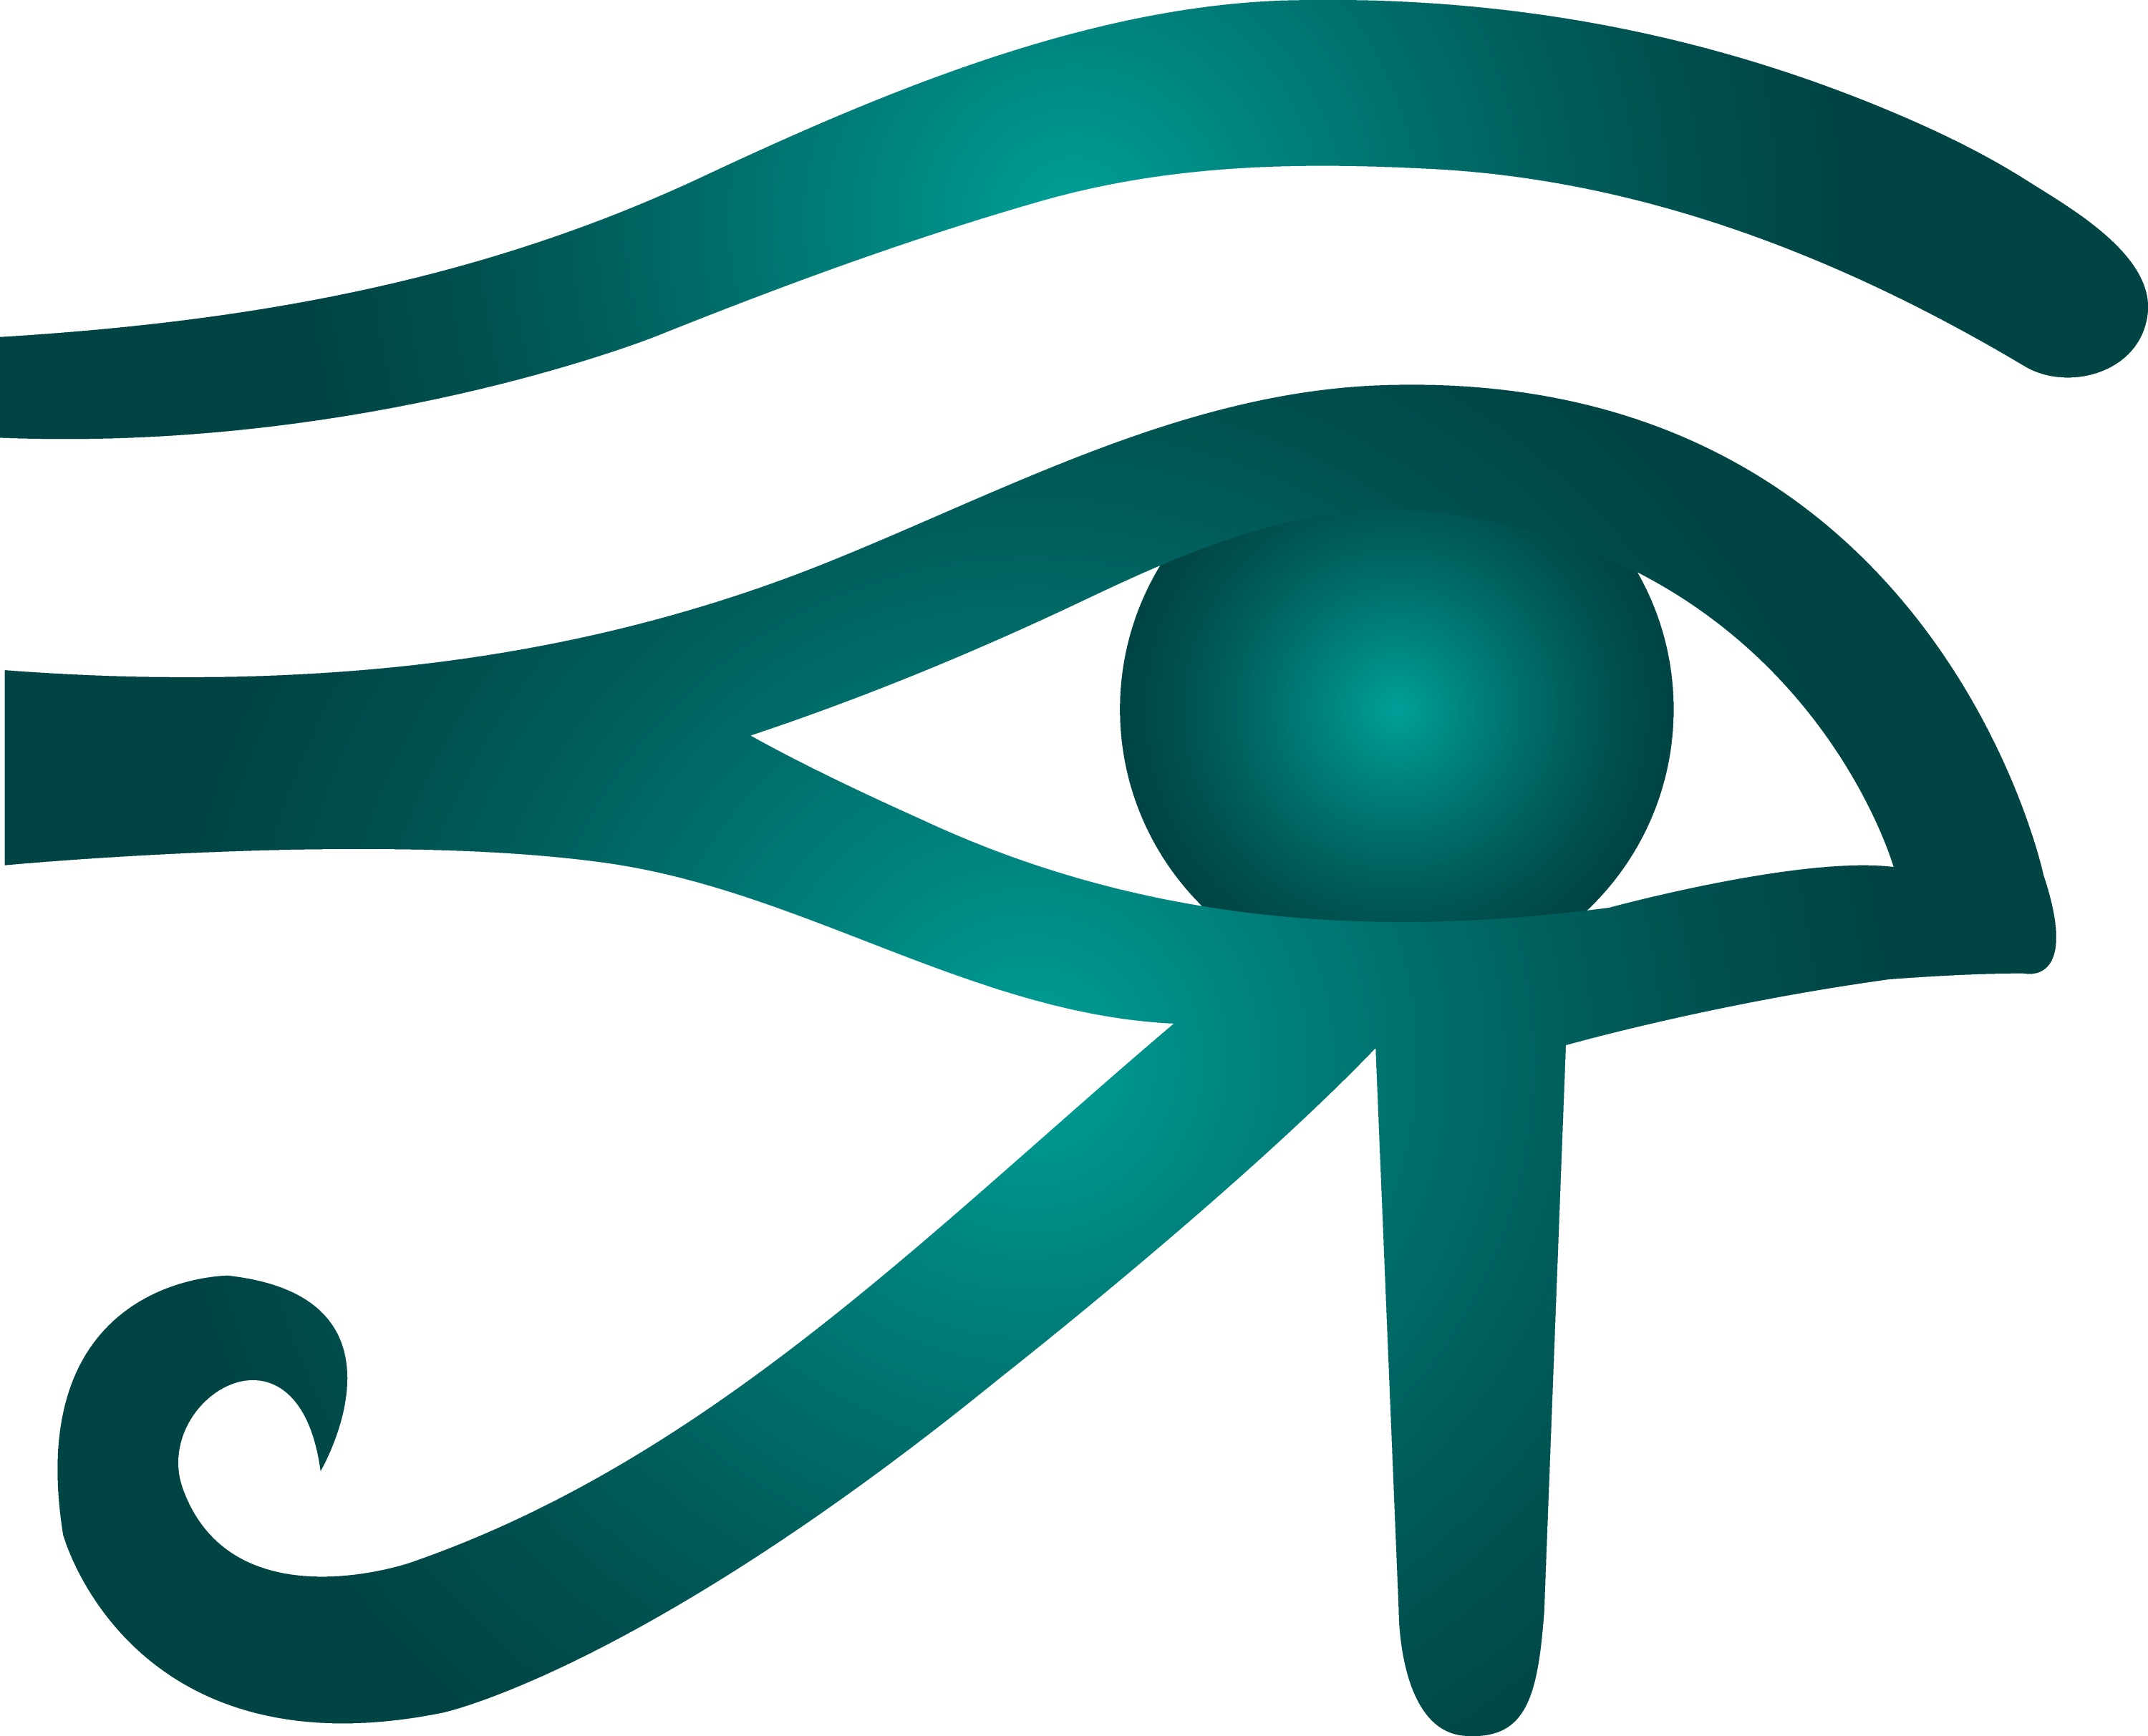 eye of horus symbol